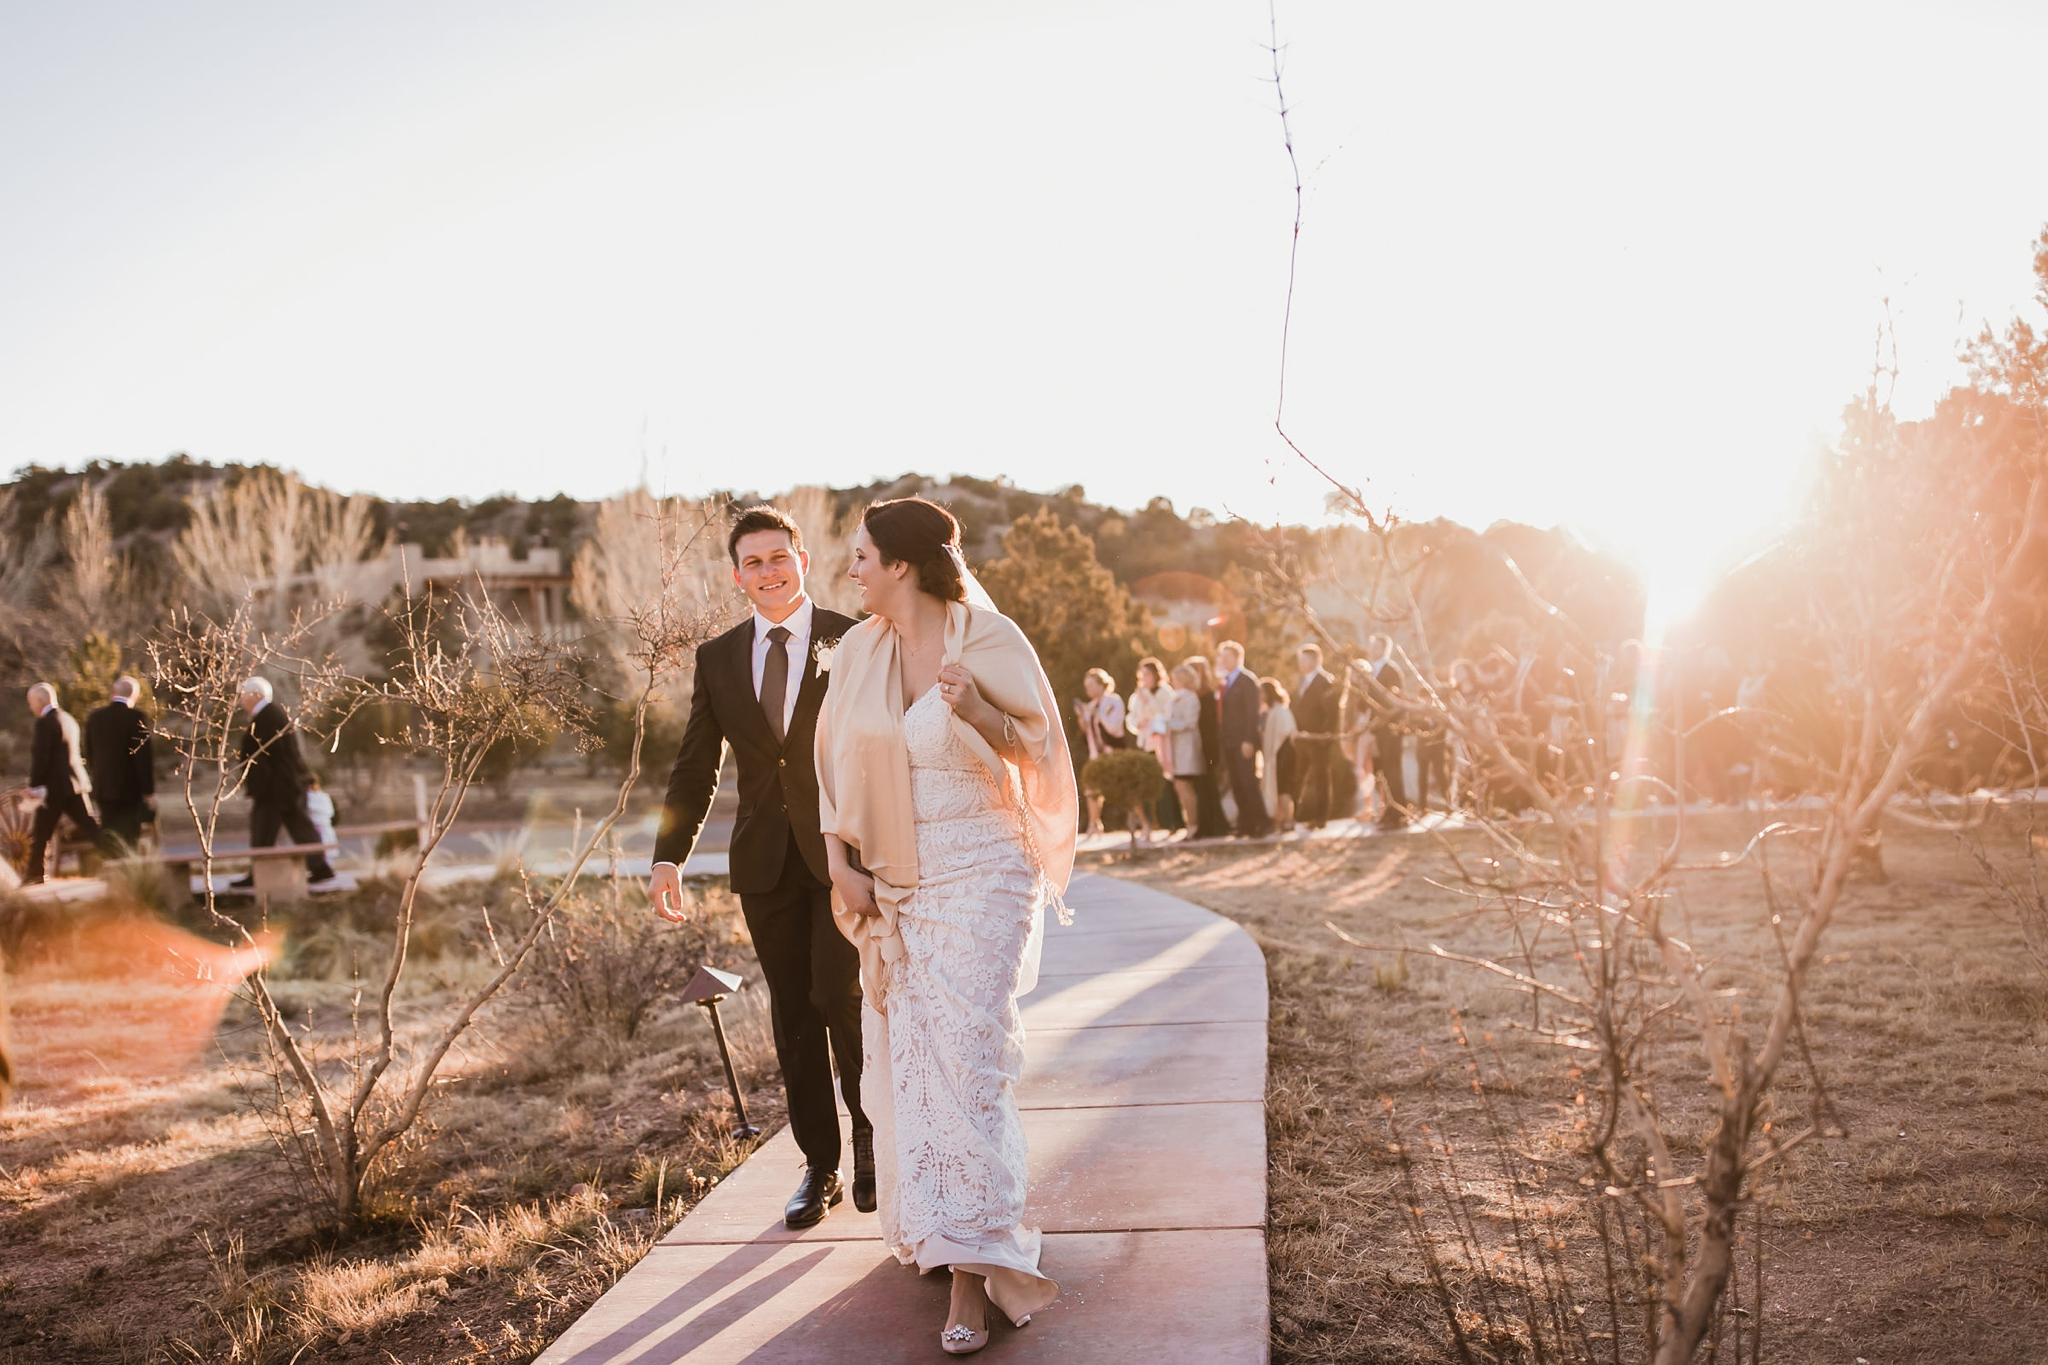 Alicia+lucia+photography+-+albuquerque+wedding+photographer+-+santa+fe+wedding+photography+-+new+mexico+wedding+photographer+-+new+mexico+wedding+-+santa+fe+wedding+-+four+seasons+wedding+-+winter+wedding_0083.jpg